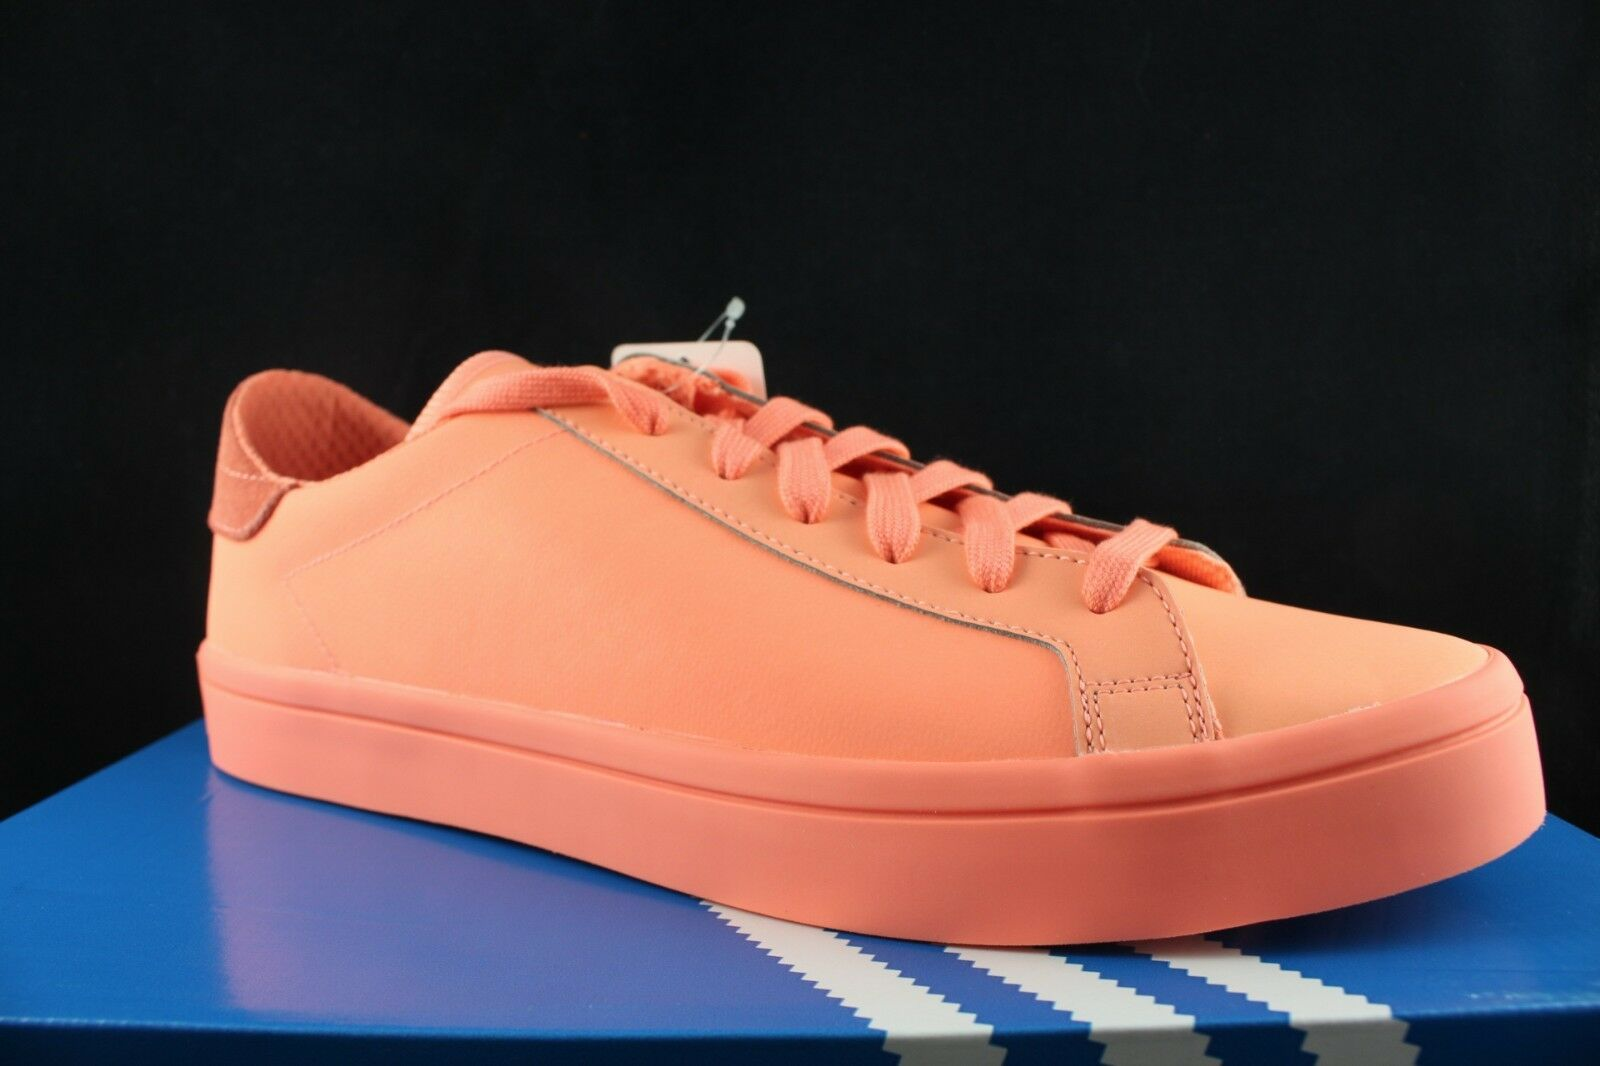 ADIDAS ORIGINALS COURTVANTAGE ADICOLOR SUN GLOW S80257 SZ 10.5